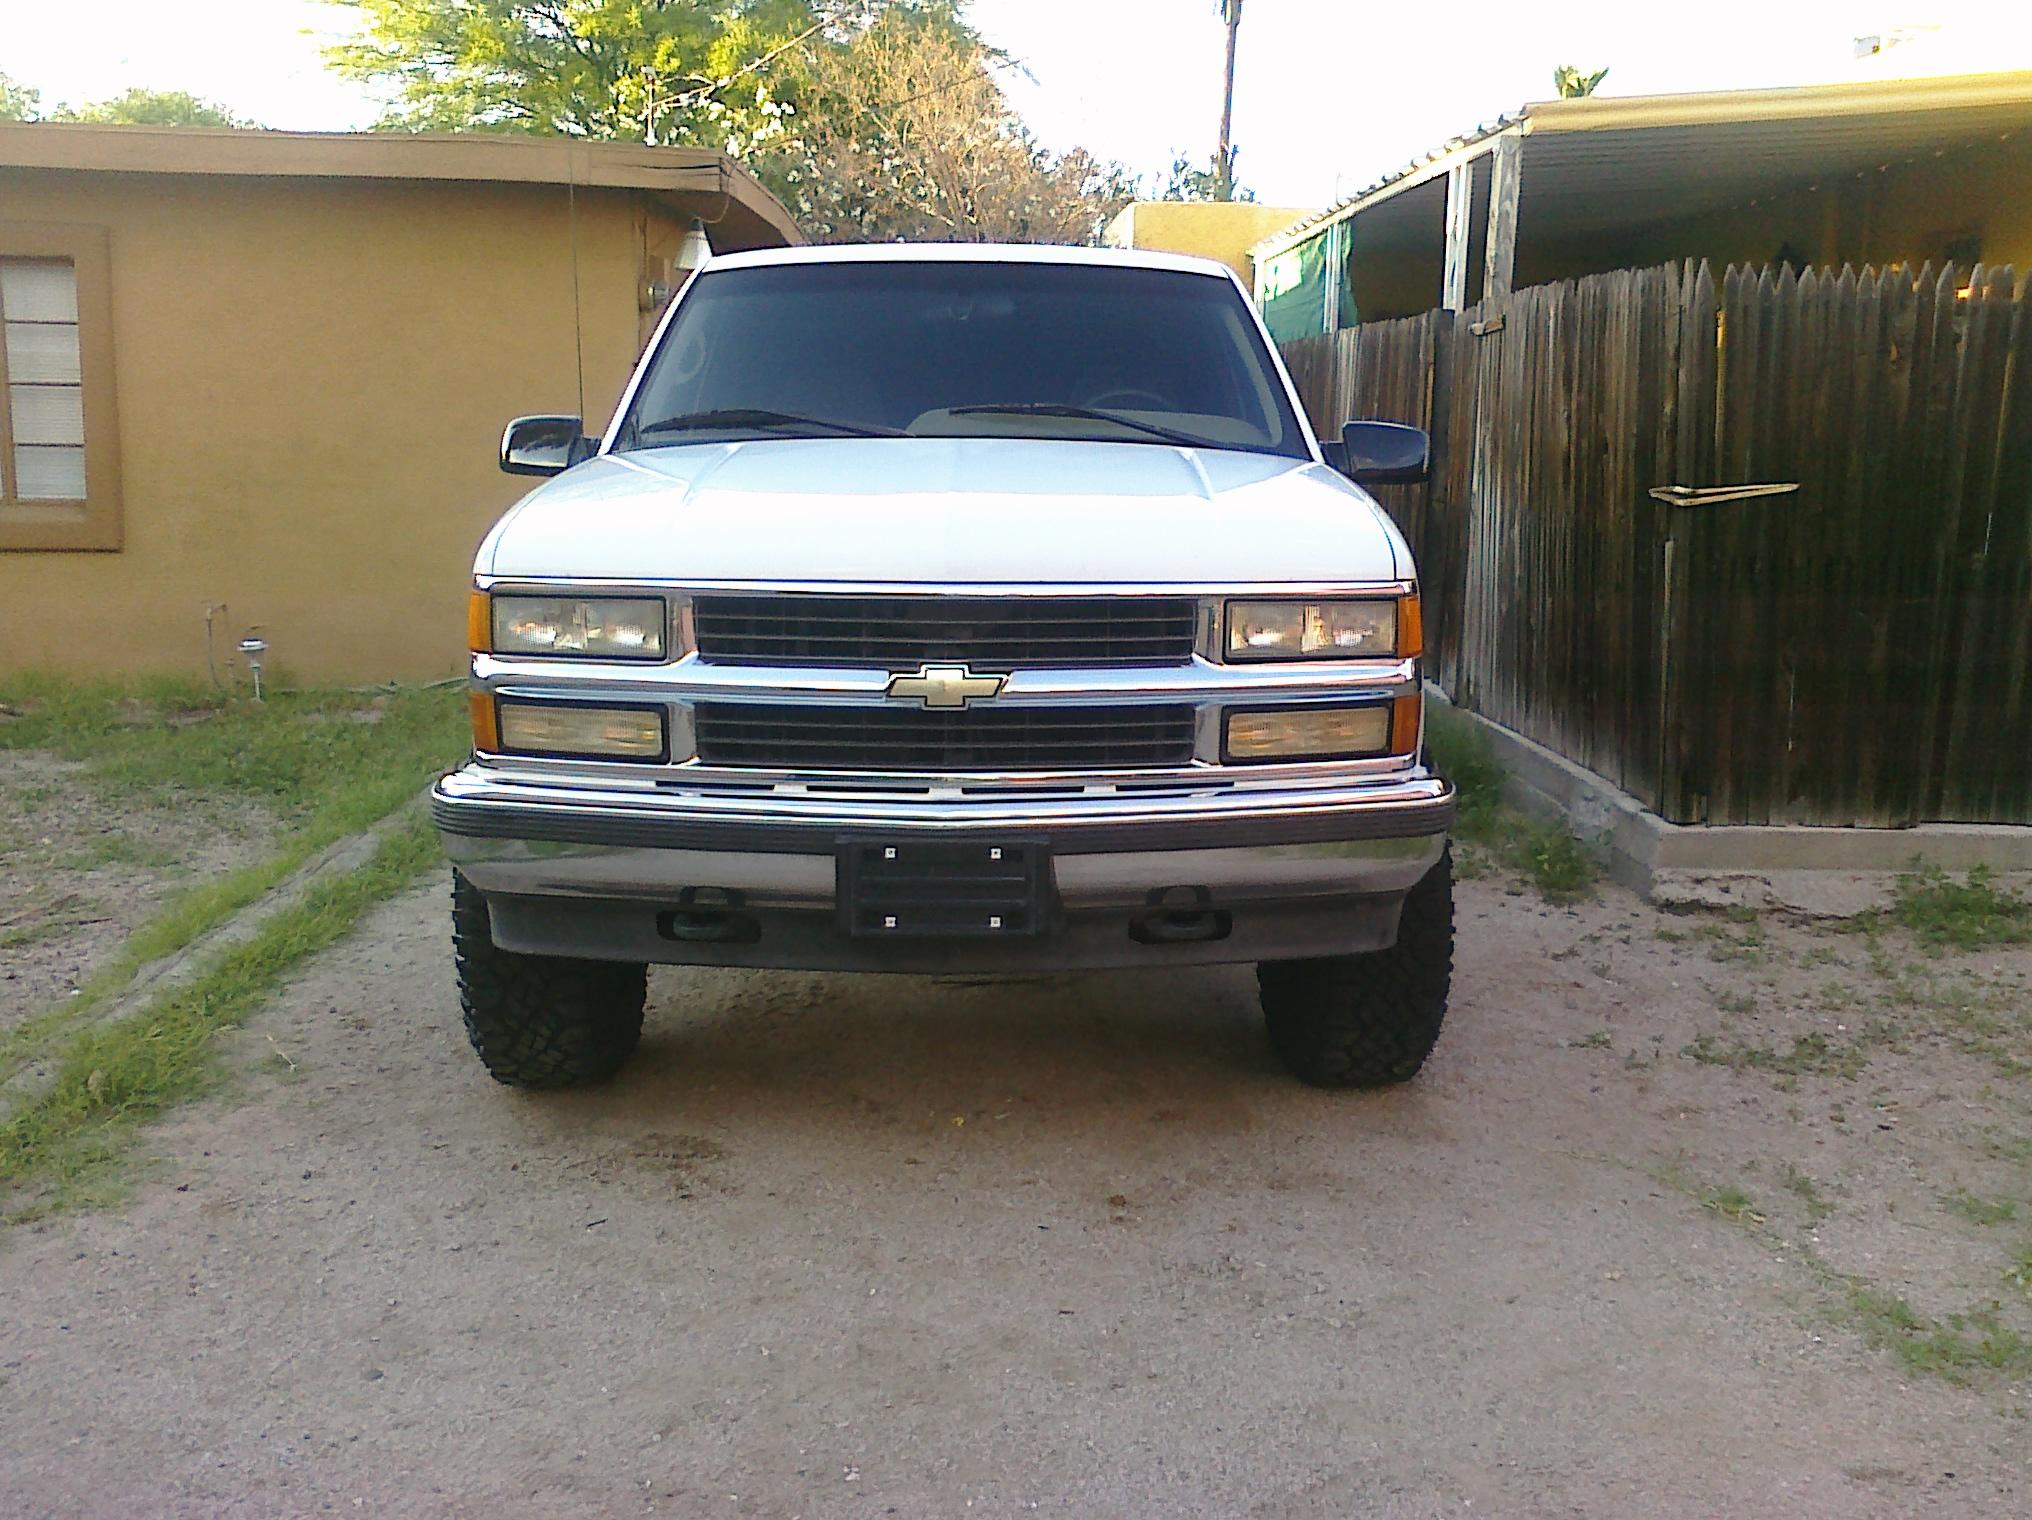 benskiii 1995 chevrolet silverado 1500 extended cab specs photos modification info at cardomain. Black Bedroom Furniture Sets. Home Design Ideas